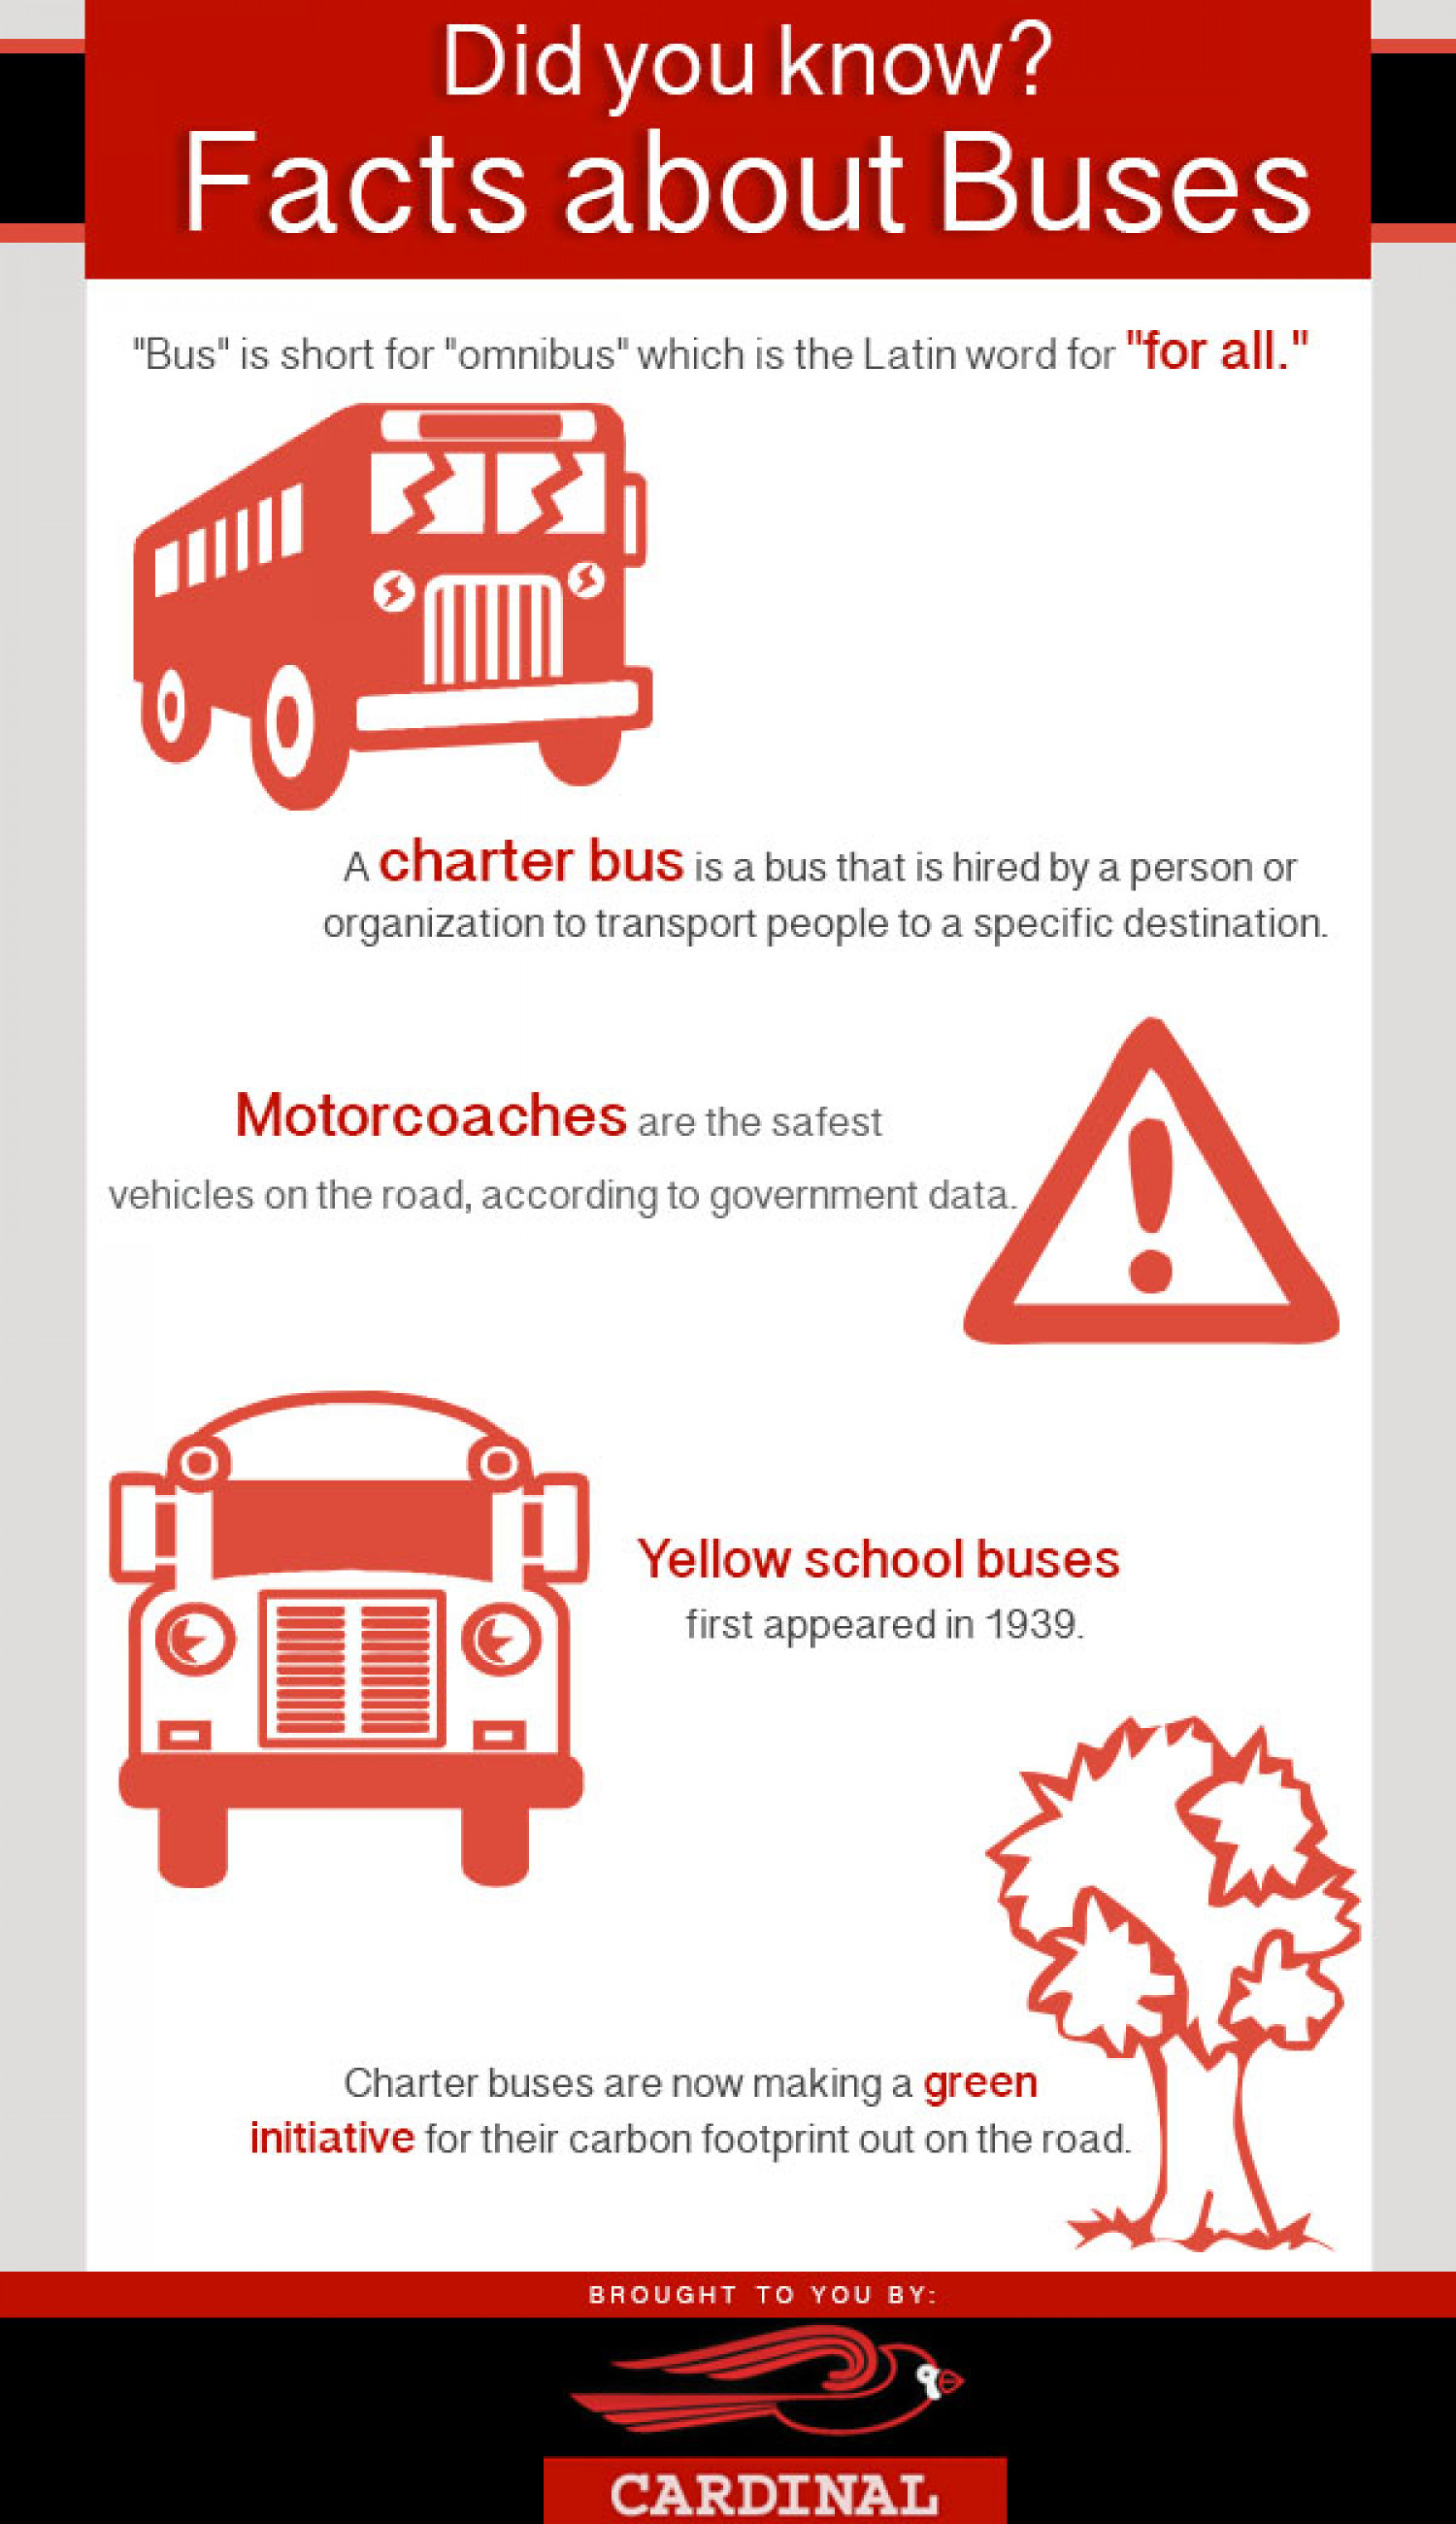 Did you know? Facts about Buses Infographic